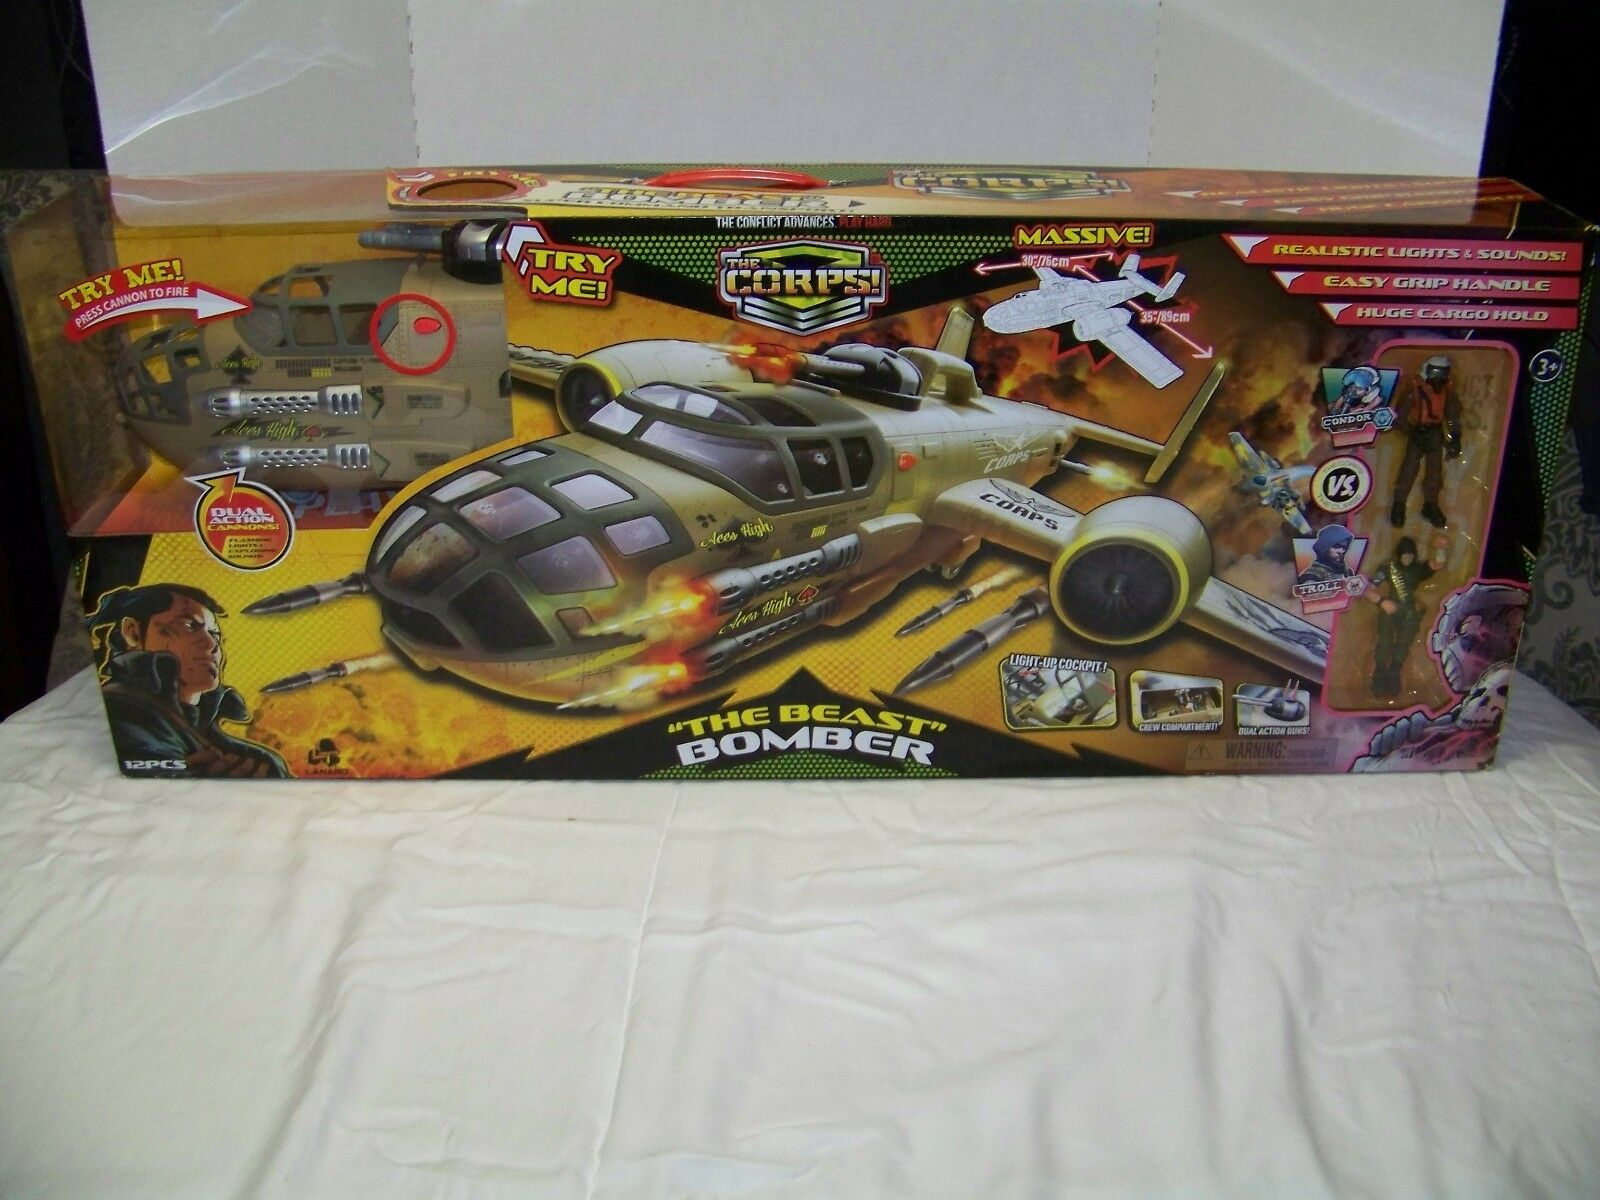 NEW LANARD THE CORPS THE BEAST BOMBER   MASSIVE  ELECTRONIC. WITH 2 FIGURES